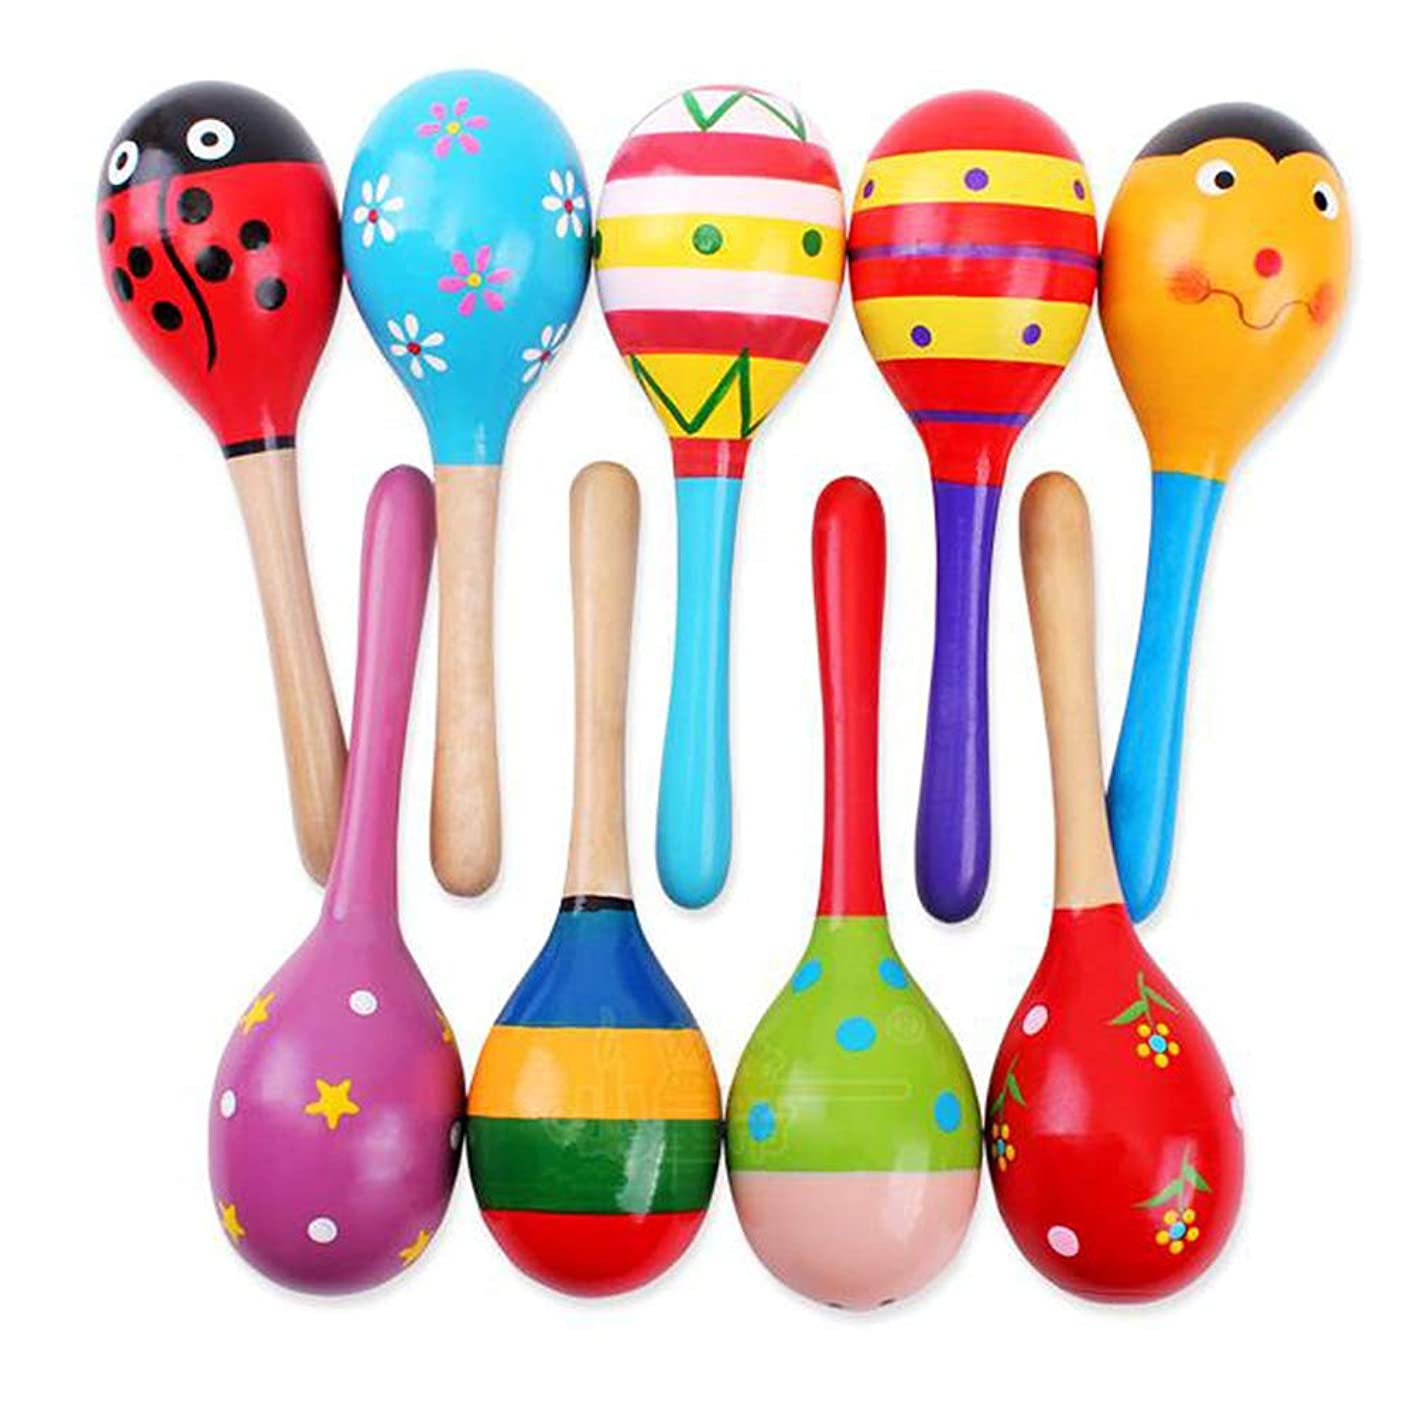 GRACEON Mini Wooden Ball Children Toys Percussion Musical Instruments Sand Hammer Baby Rattles Toy Cartoon Wooden Ball